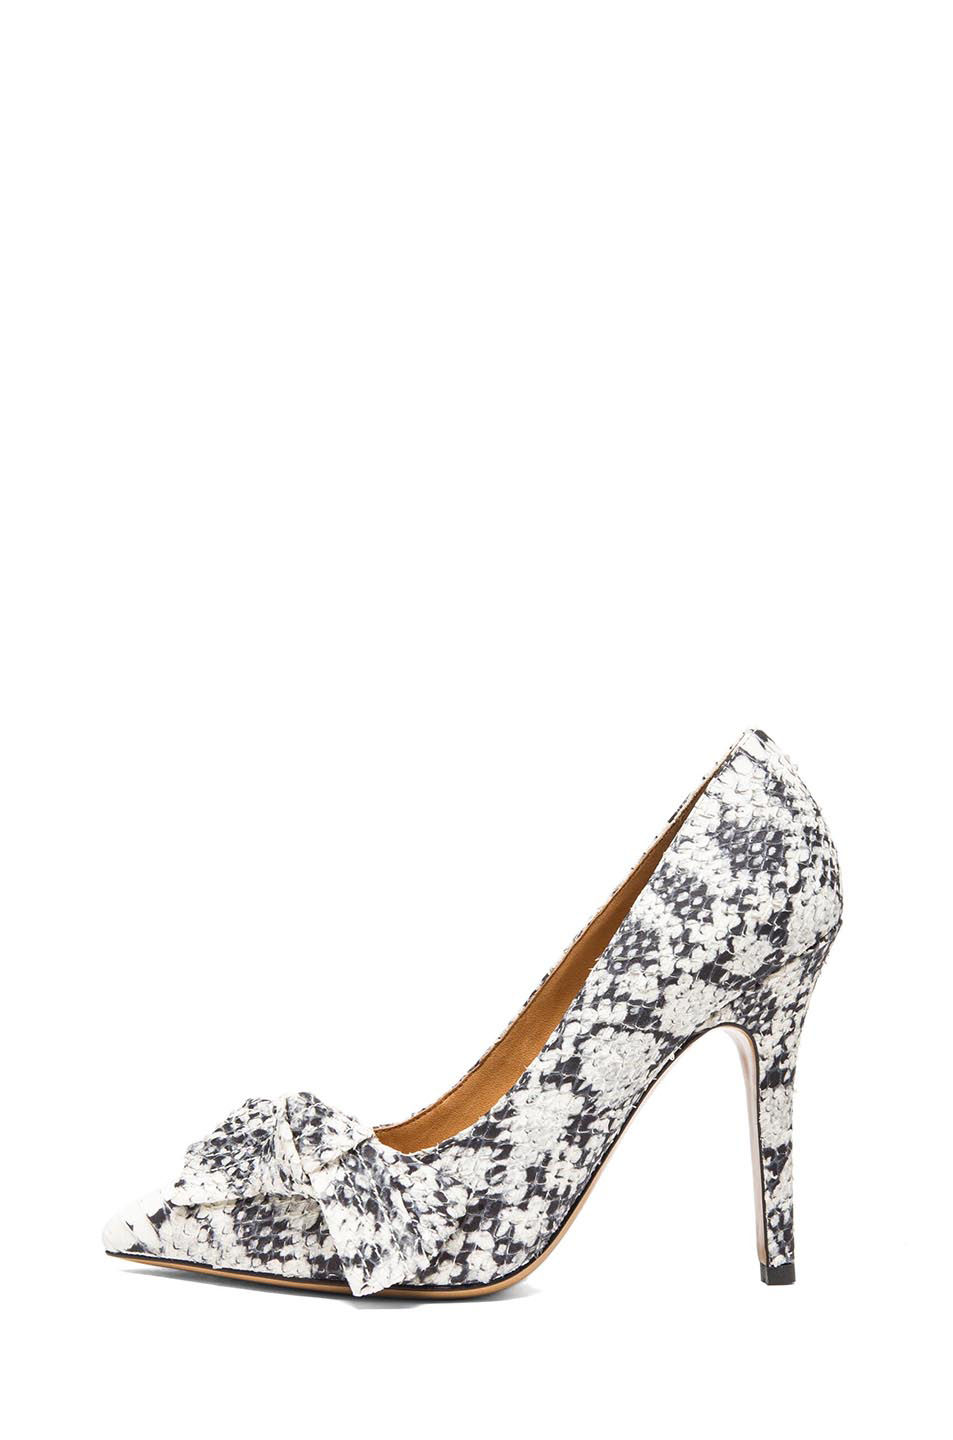 Isabel Marant|Poppy Pumps in Beige Python